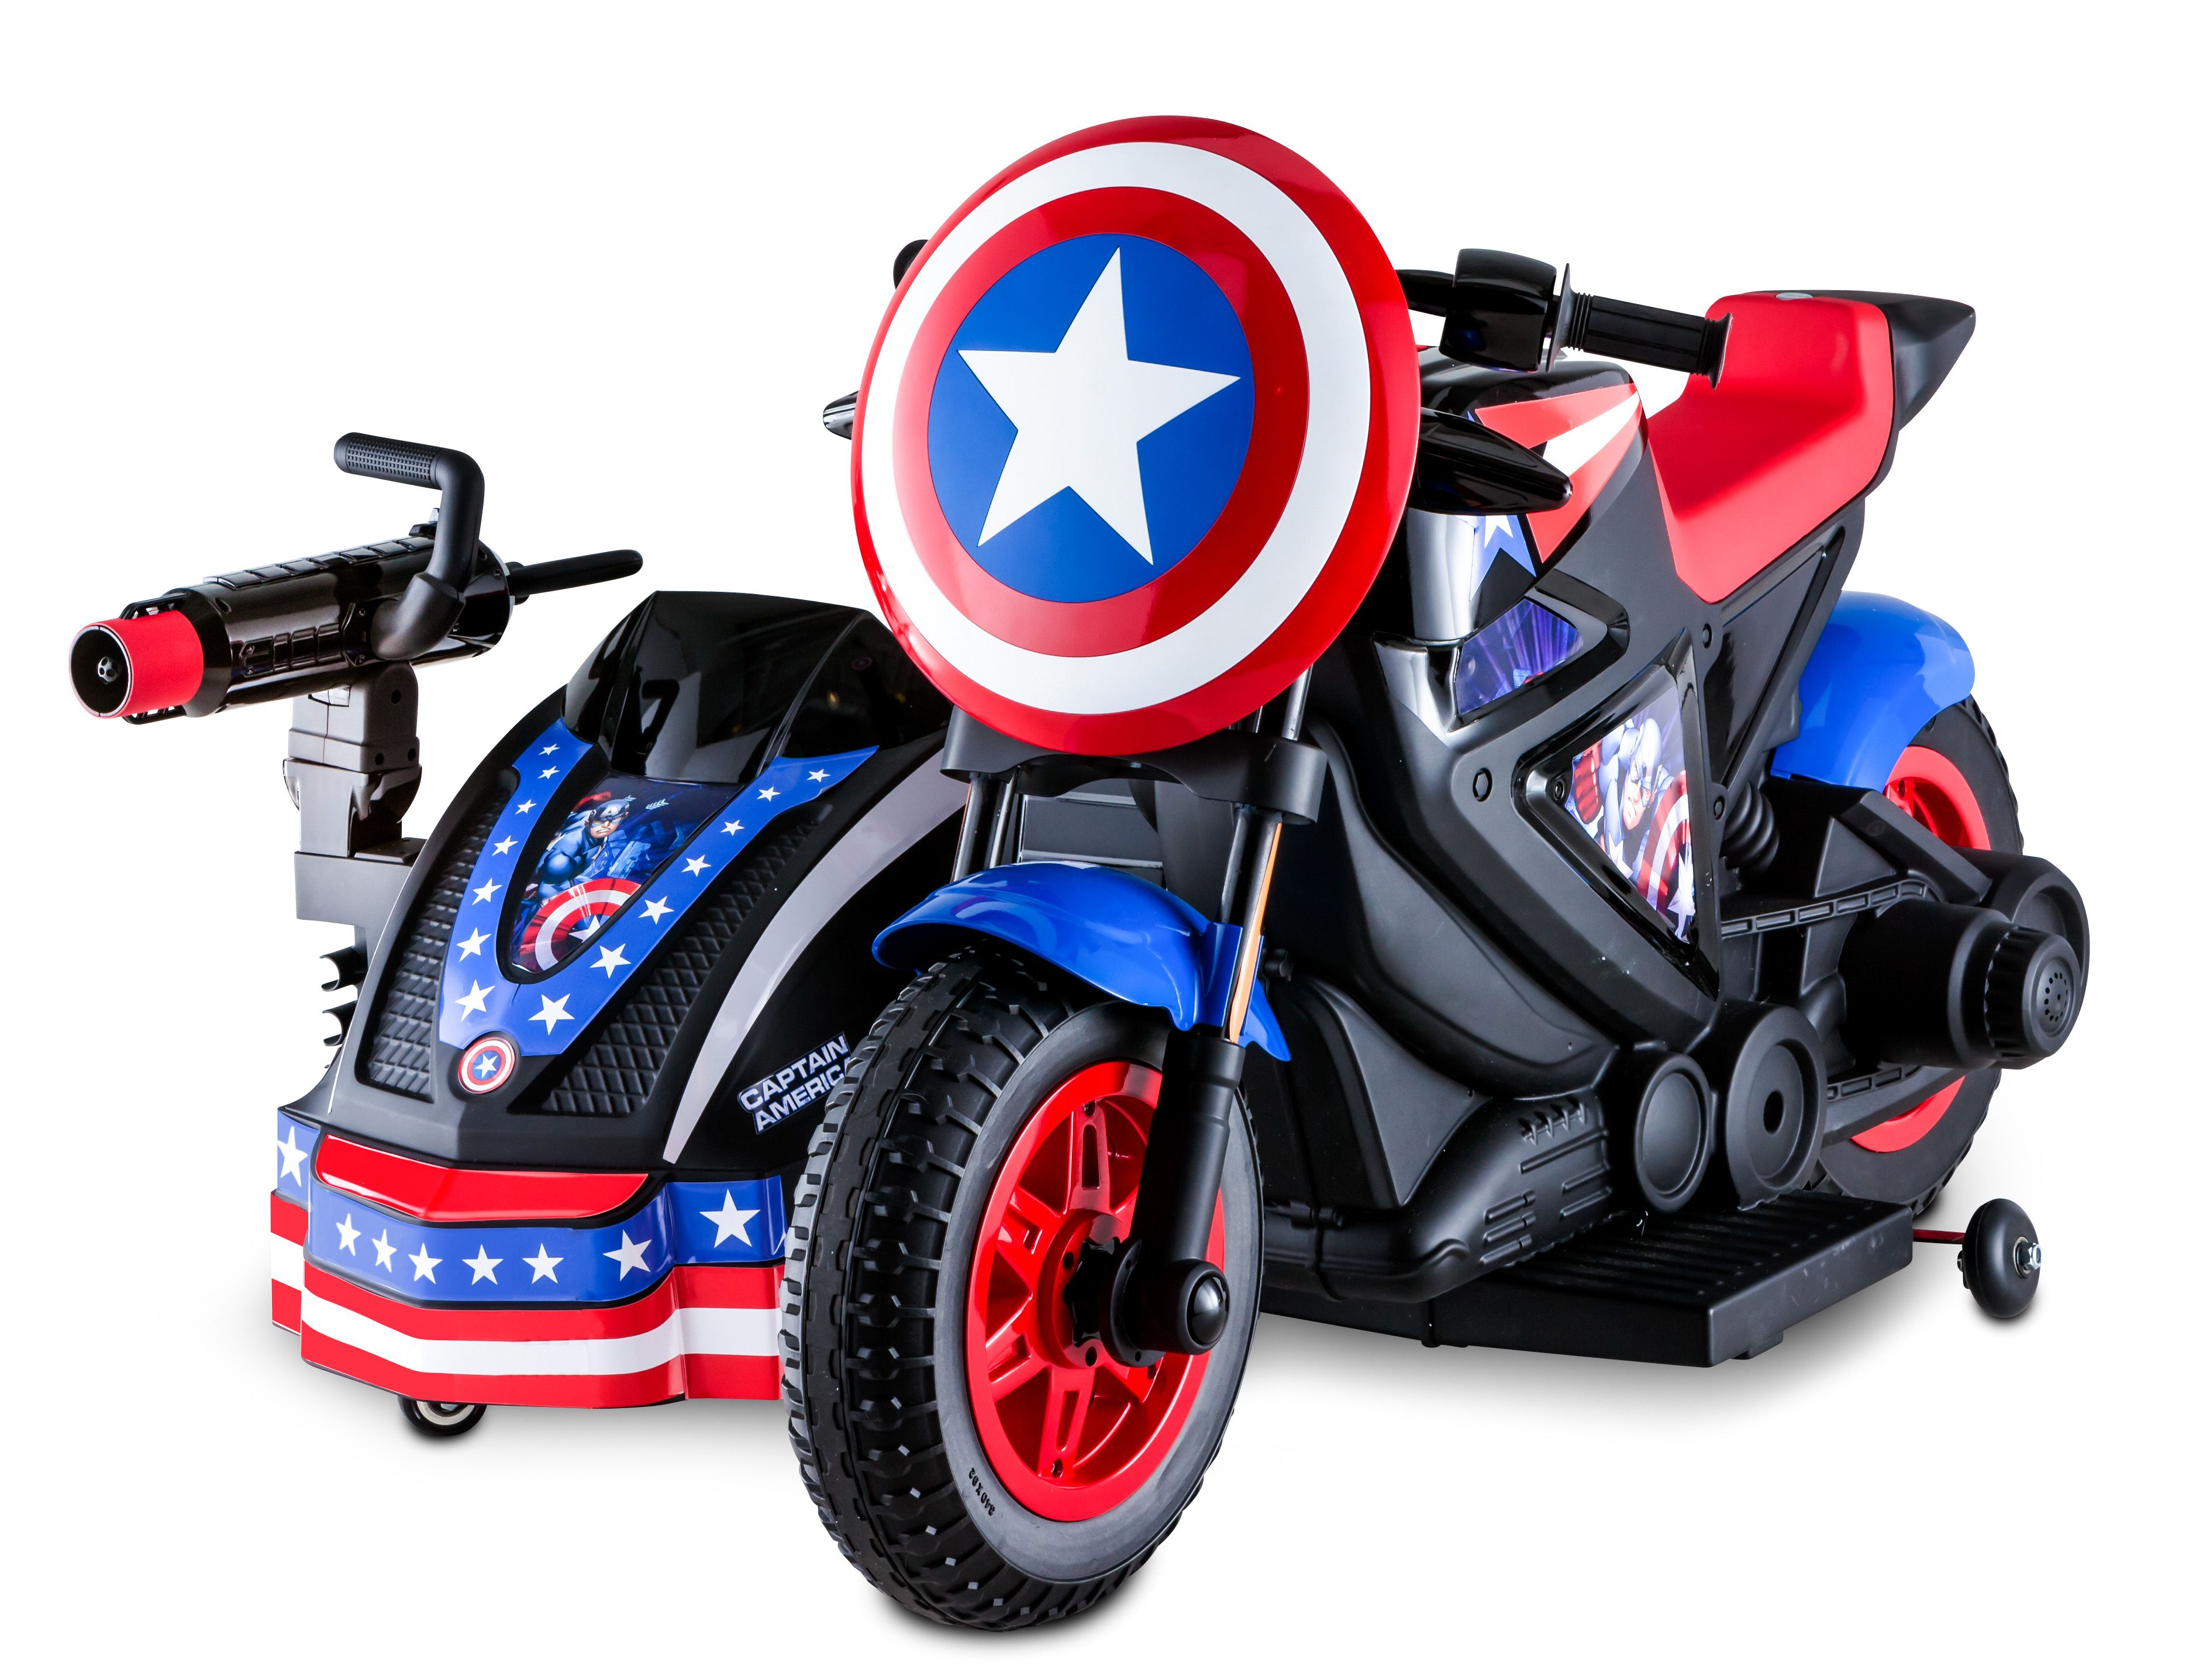 Marvel S Captain America Motorcycle And Sidecar 12 Volt Ride On Toy By Kid Trax Walmart Com In 2020 Captain America Motorcycle Ride On Toys Marvel Captain America